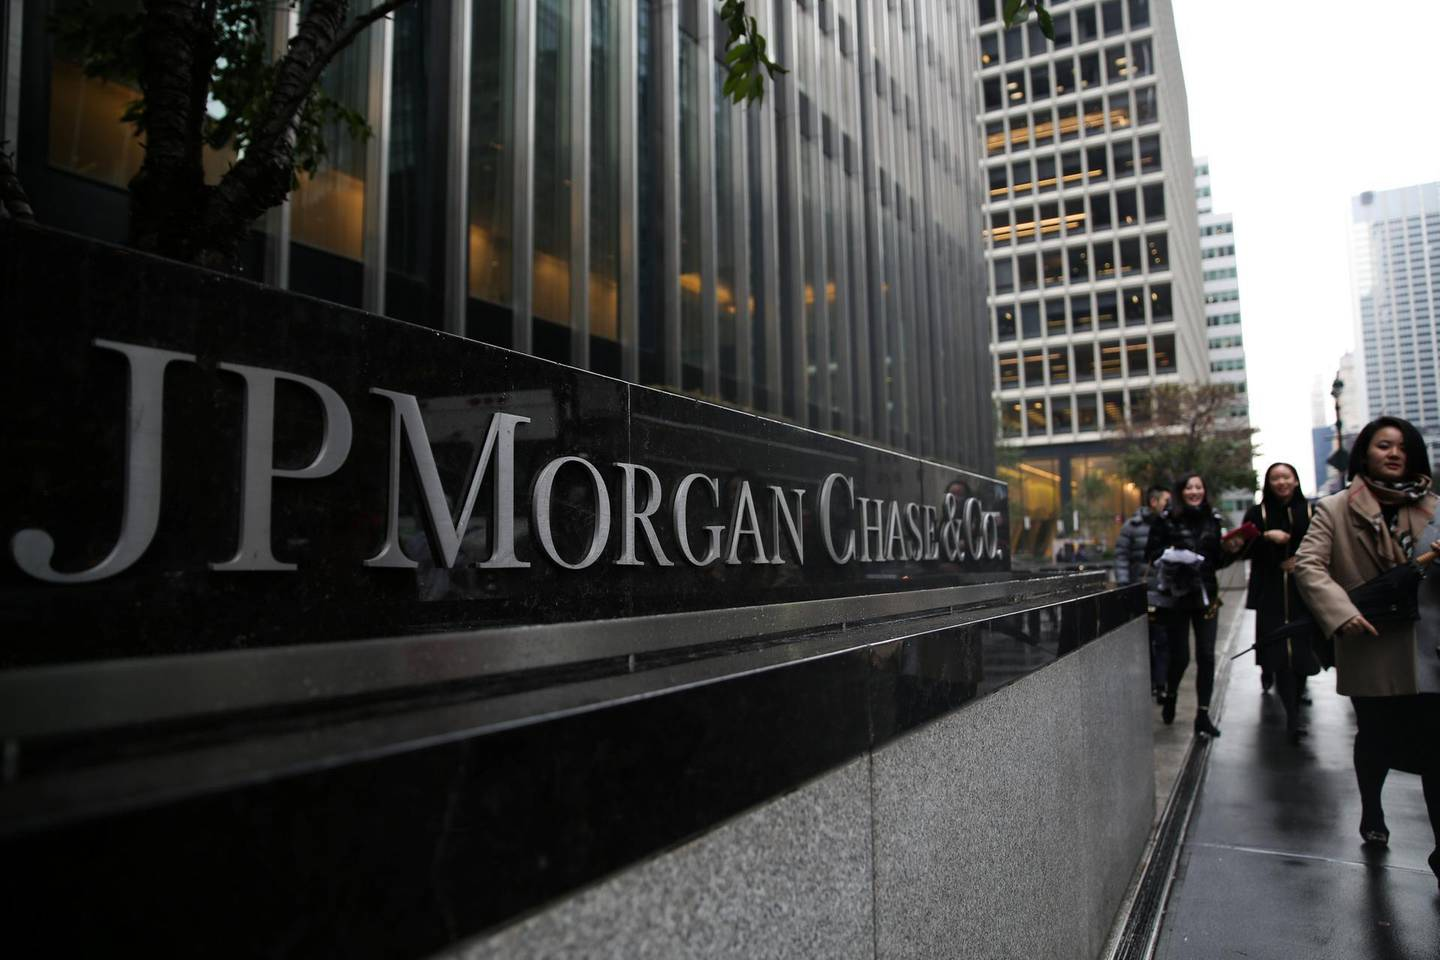 A sign of JP Morgan Chase Bank is seen in front of their headquarters tower in Manhattan, New York, U.S., November 13, 2017. REUTERS/Amr Alfiky